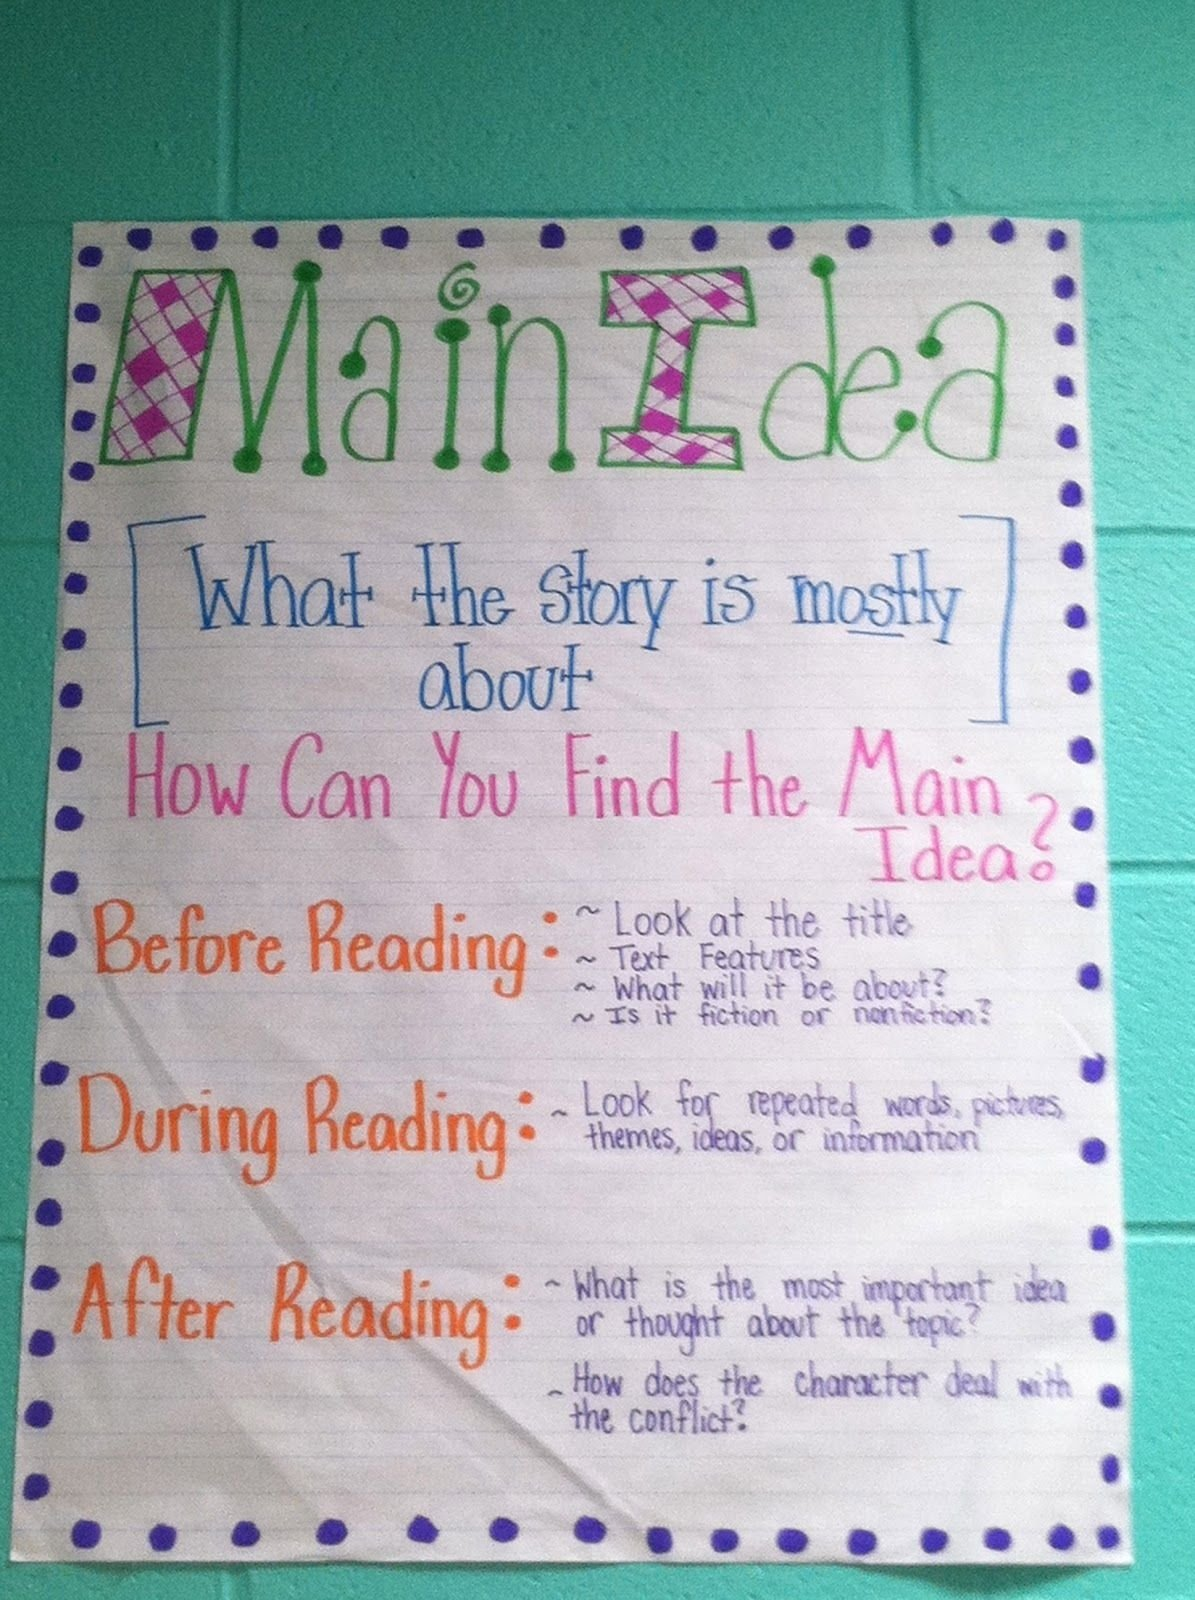 10 Elegant How To Find The Main Idea Of A Story how you can find the main idea before during and after reading 1 2020